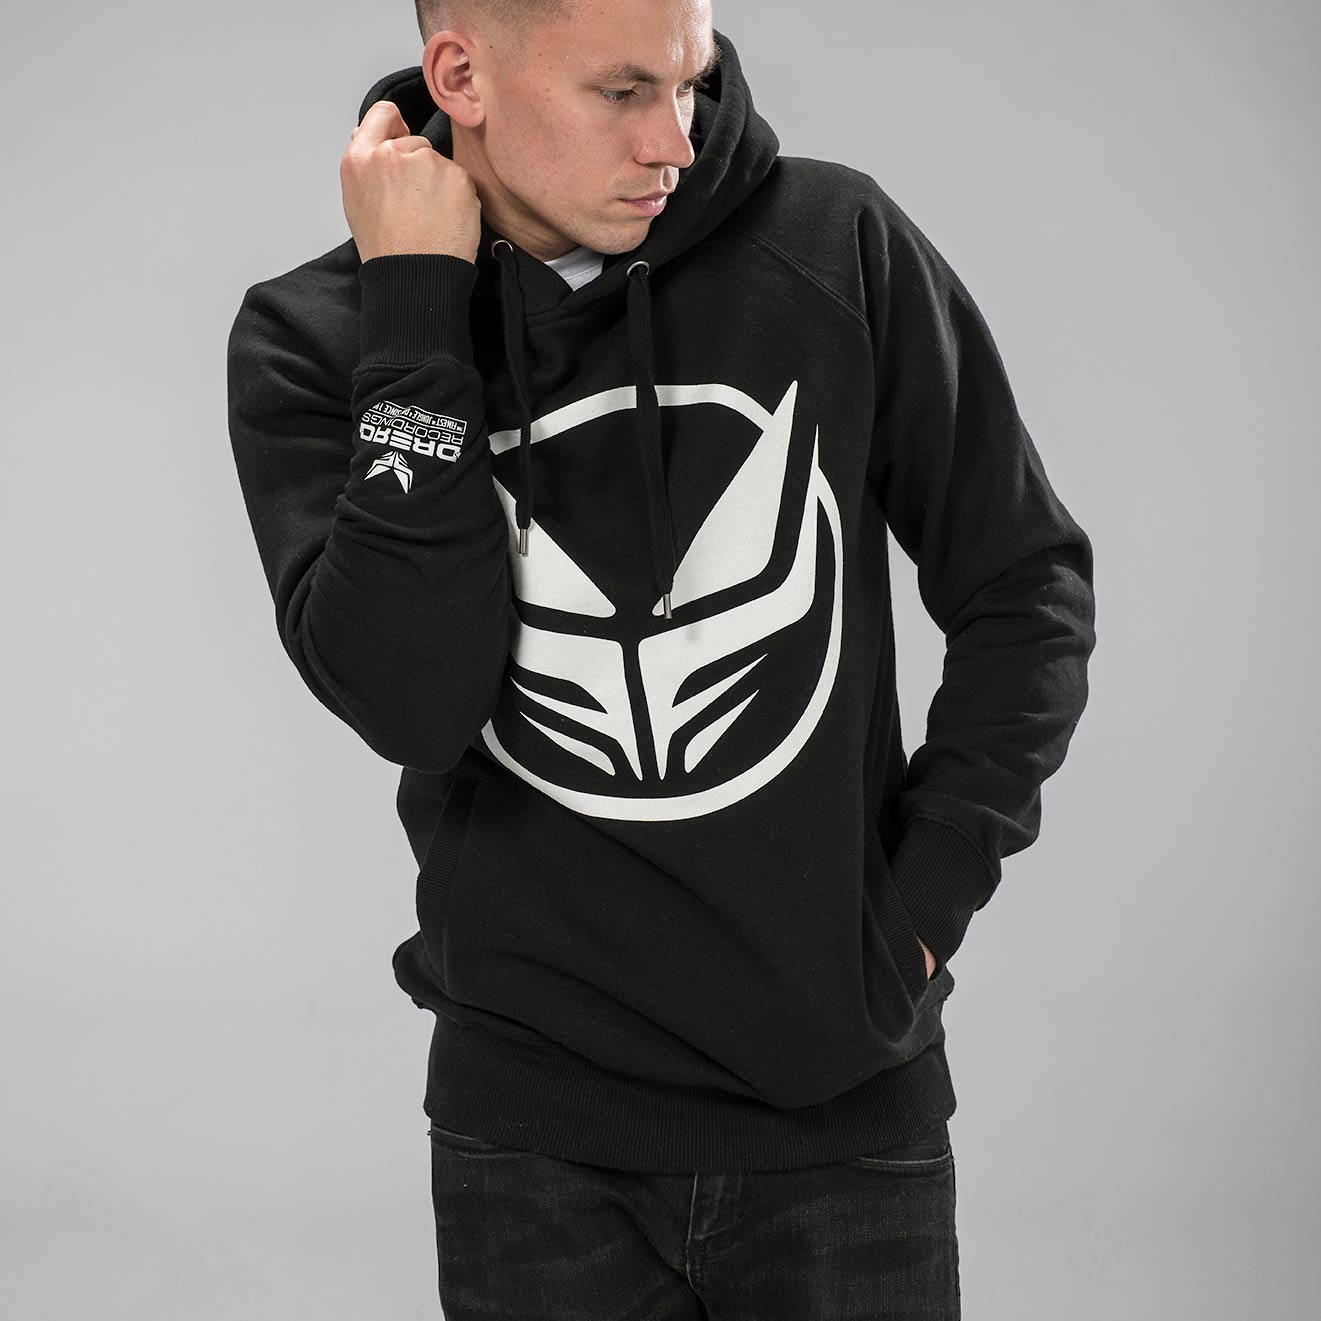 Black Dread Recordings Hoodie with White Logo